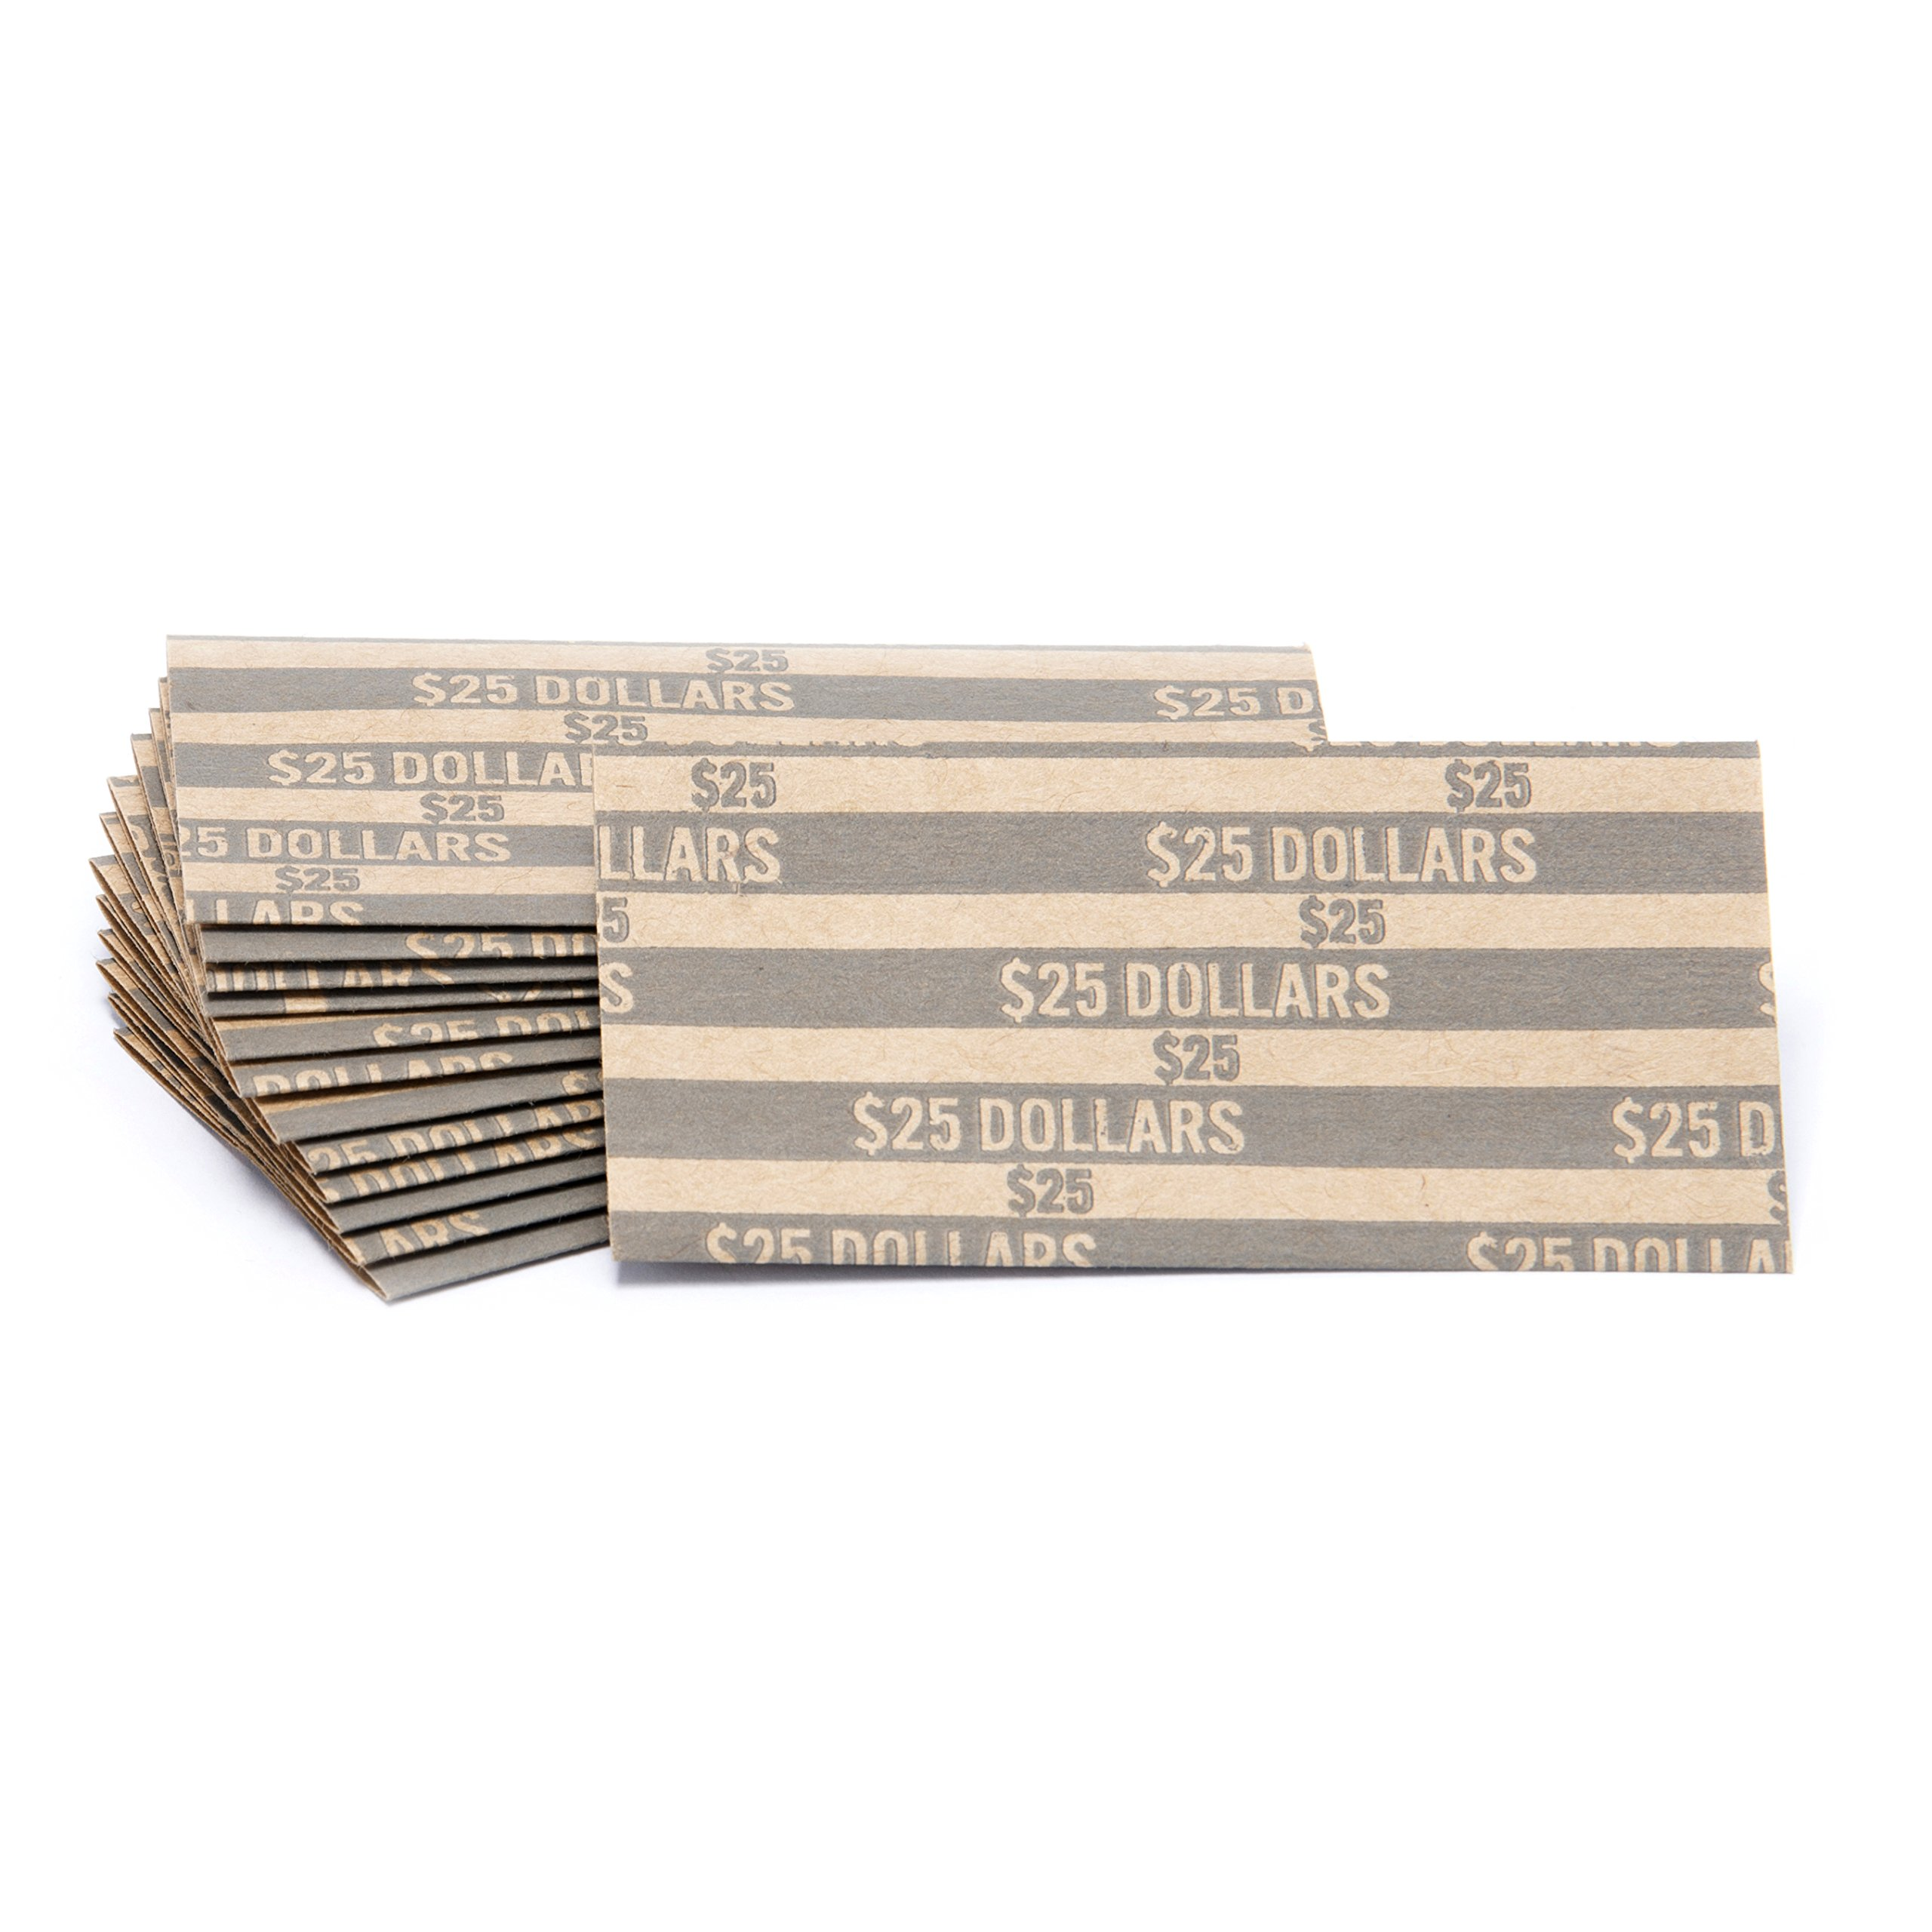 Sacagawea Dollar Flat Striped Coin Wrappers, Bundle of 1,000